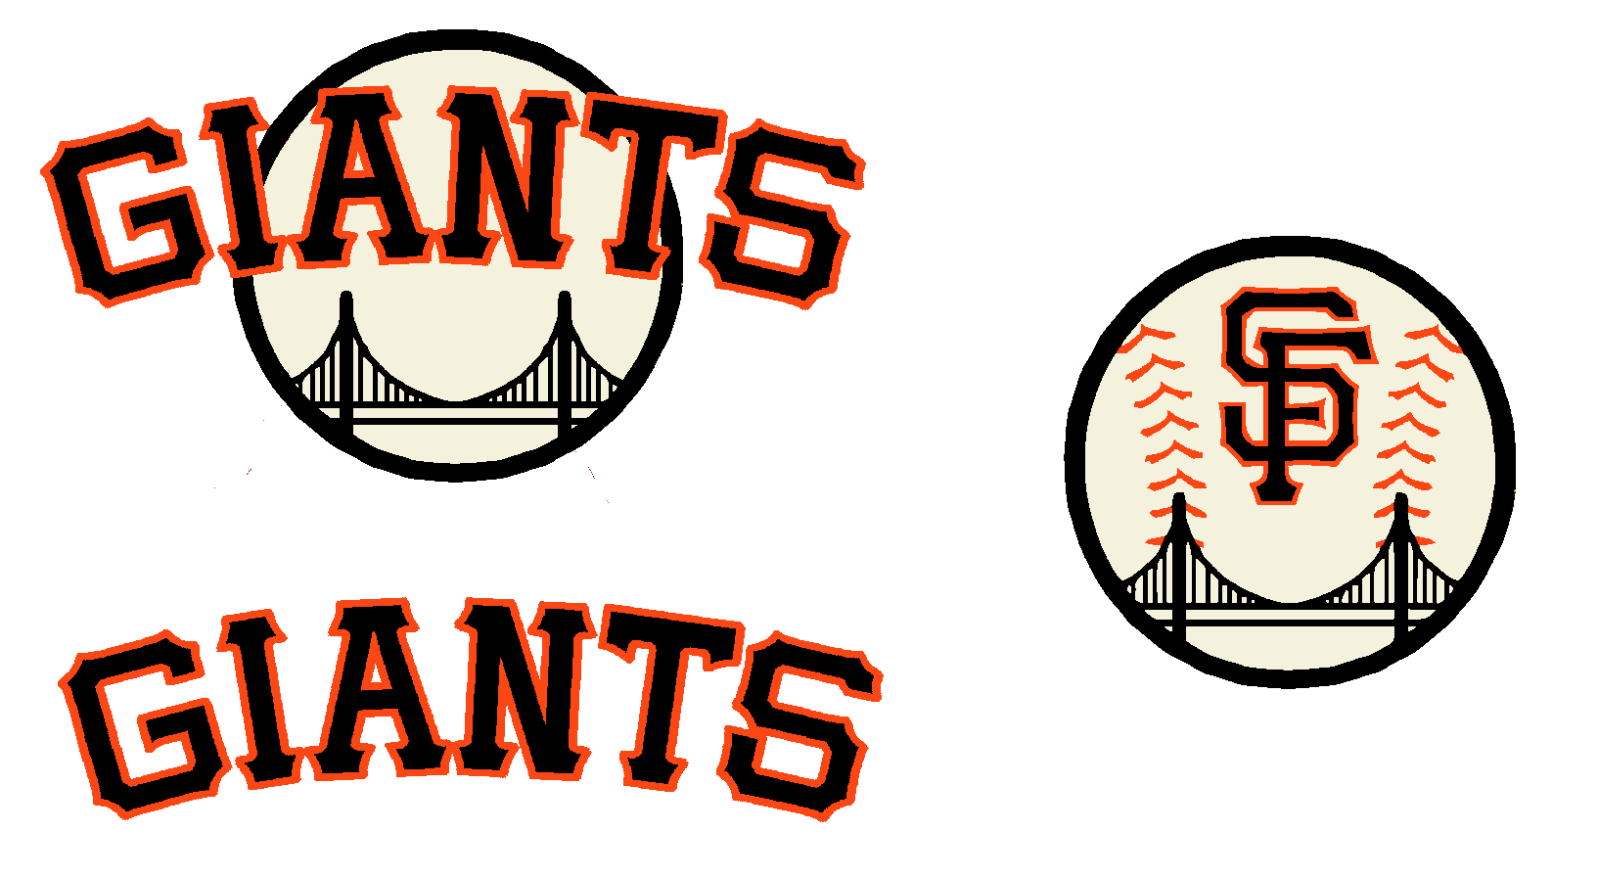 sf giants logo font candelalive co uk u2022 rh candelalive co uk